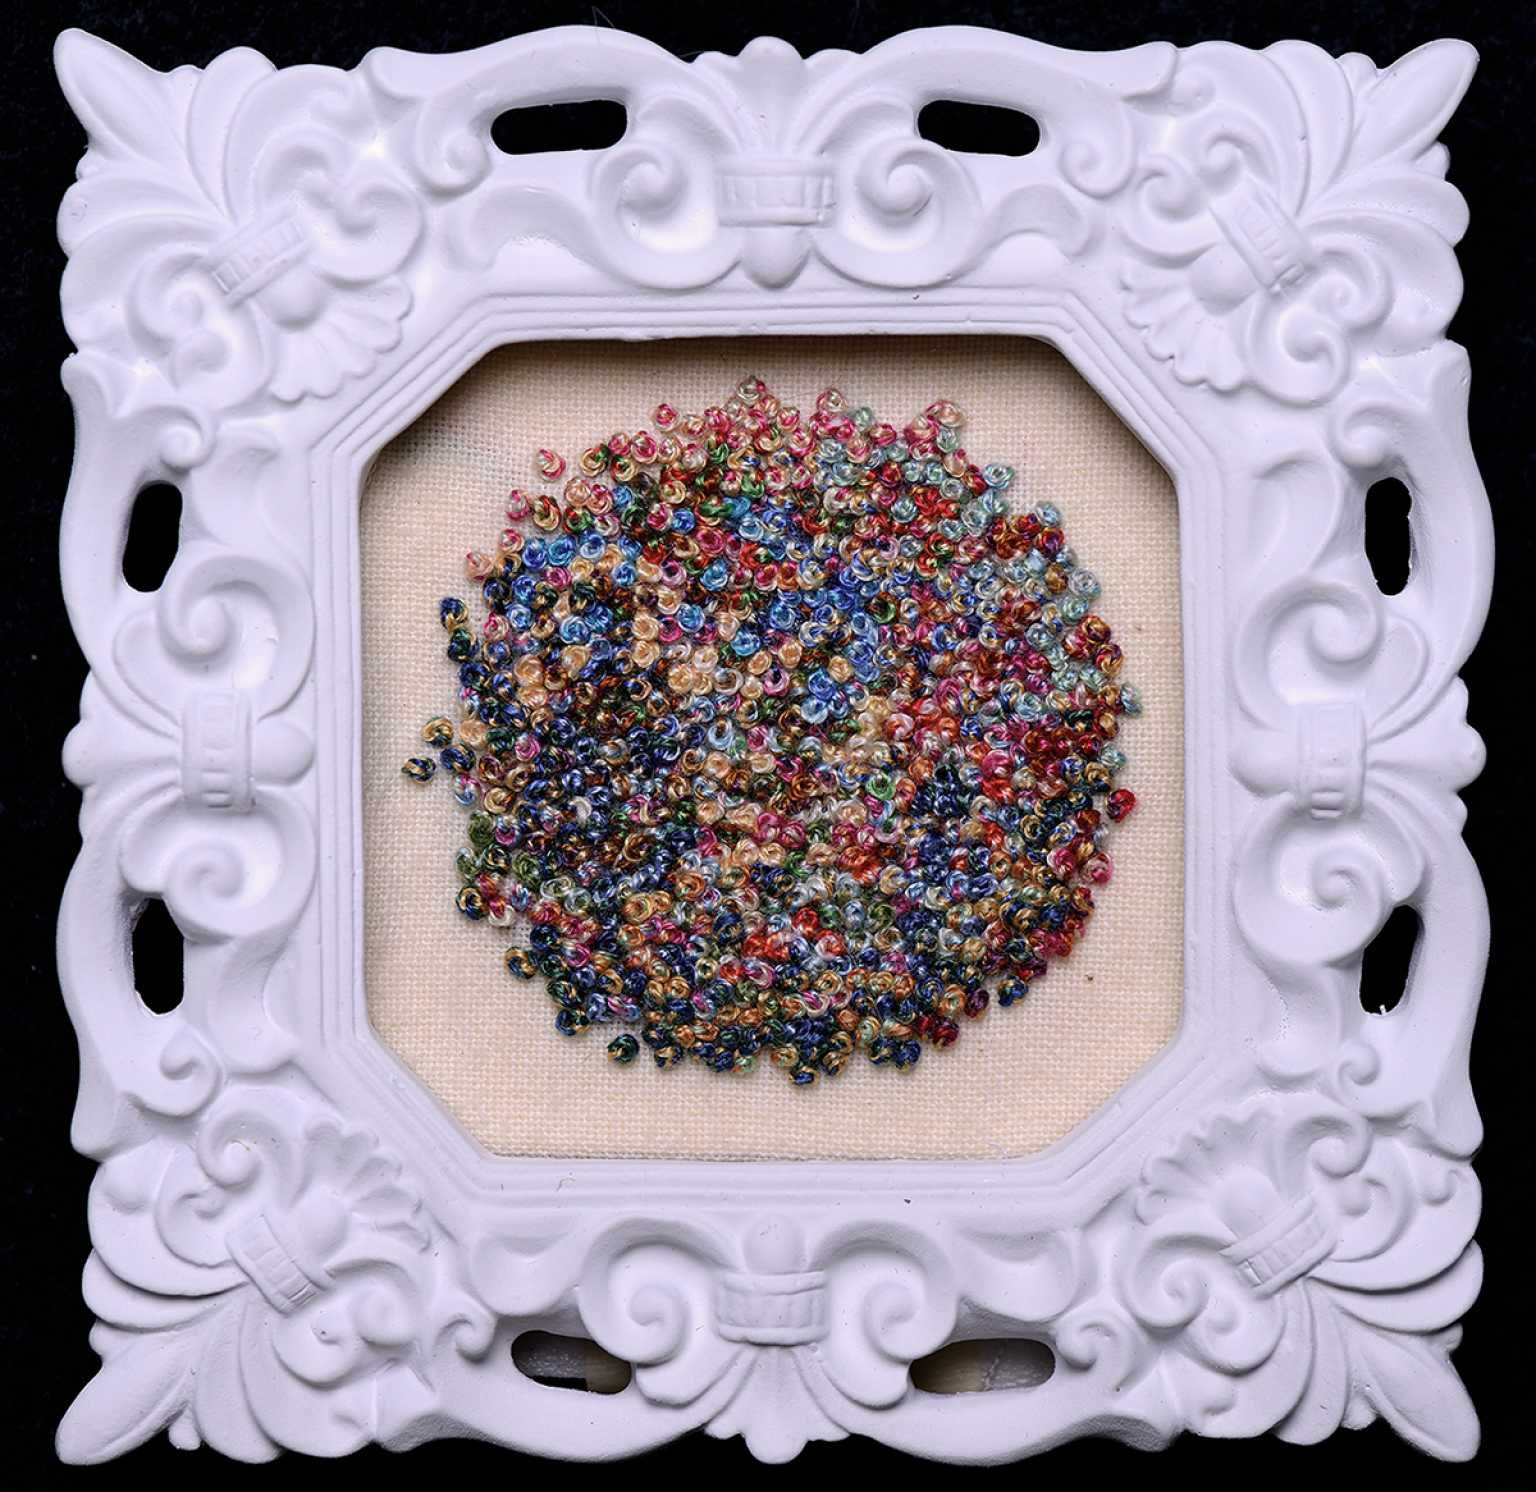 Five Hundred and Ninety-Five French Knots